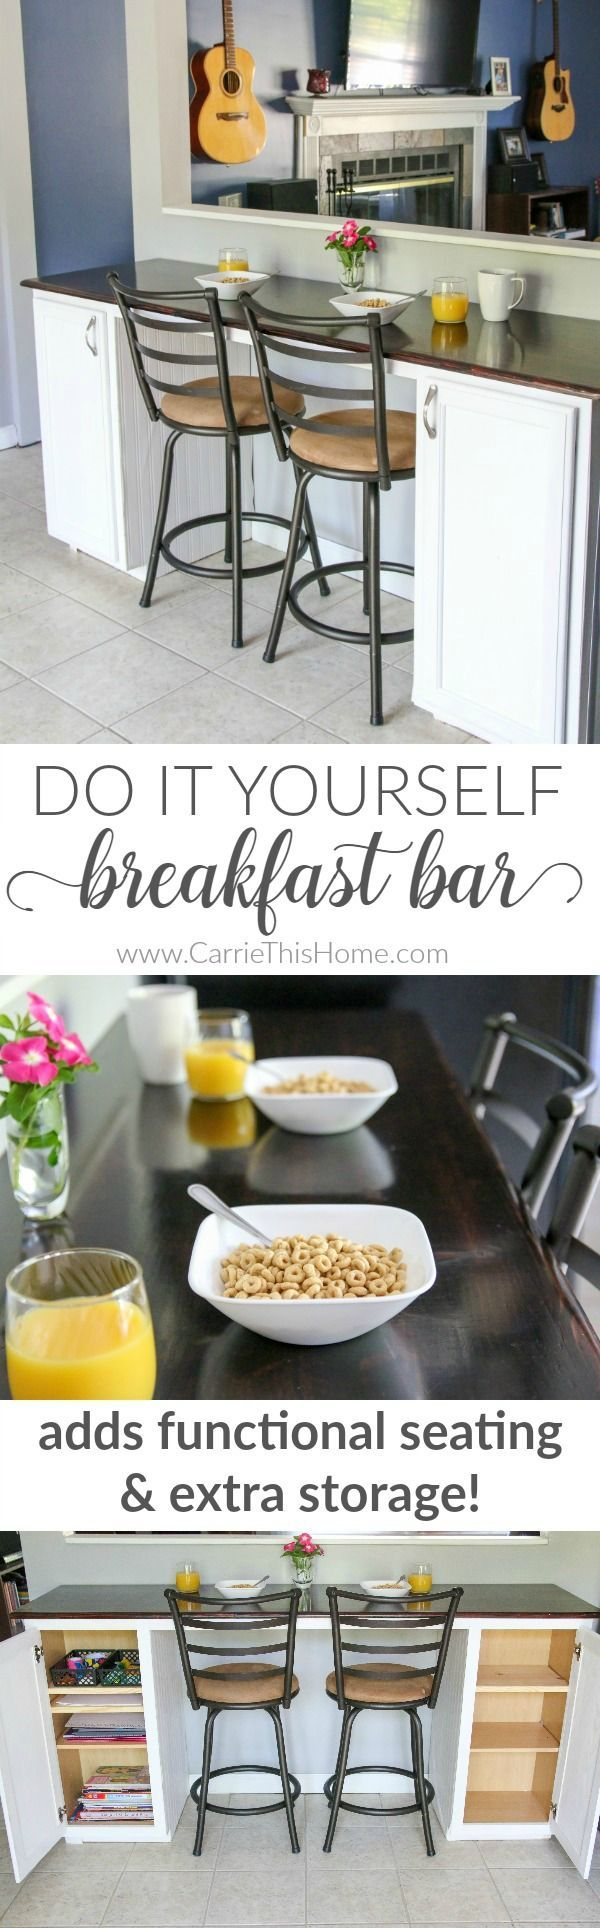 Best 25+ Breakfast bar kitchen ideas on Pinterest ...